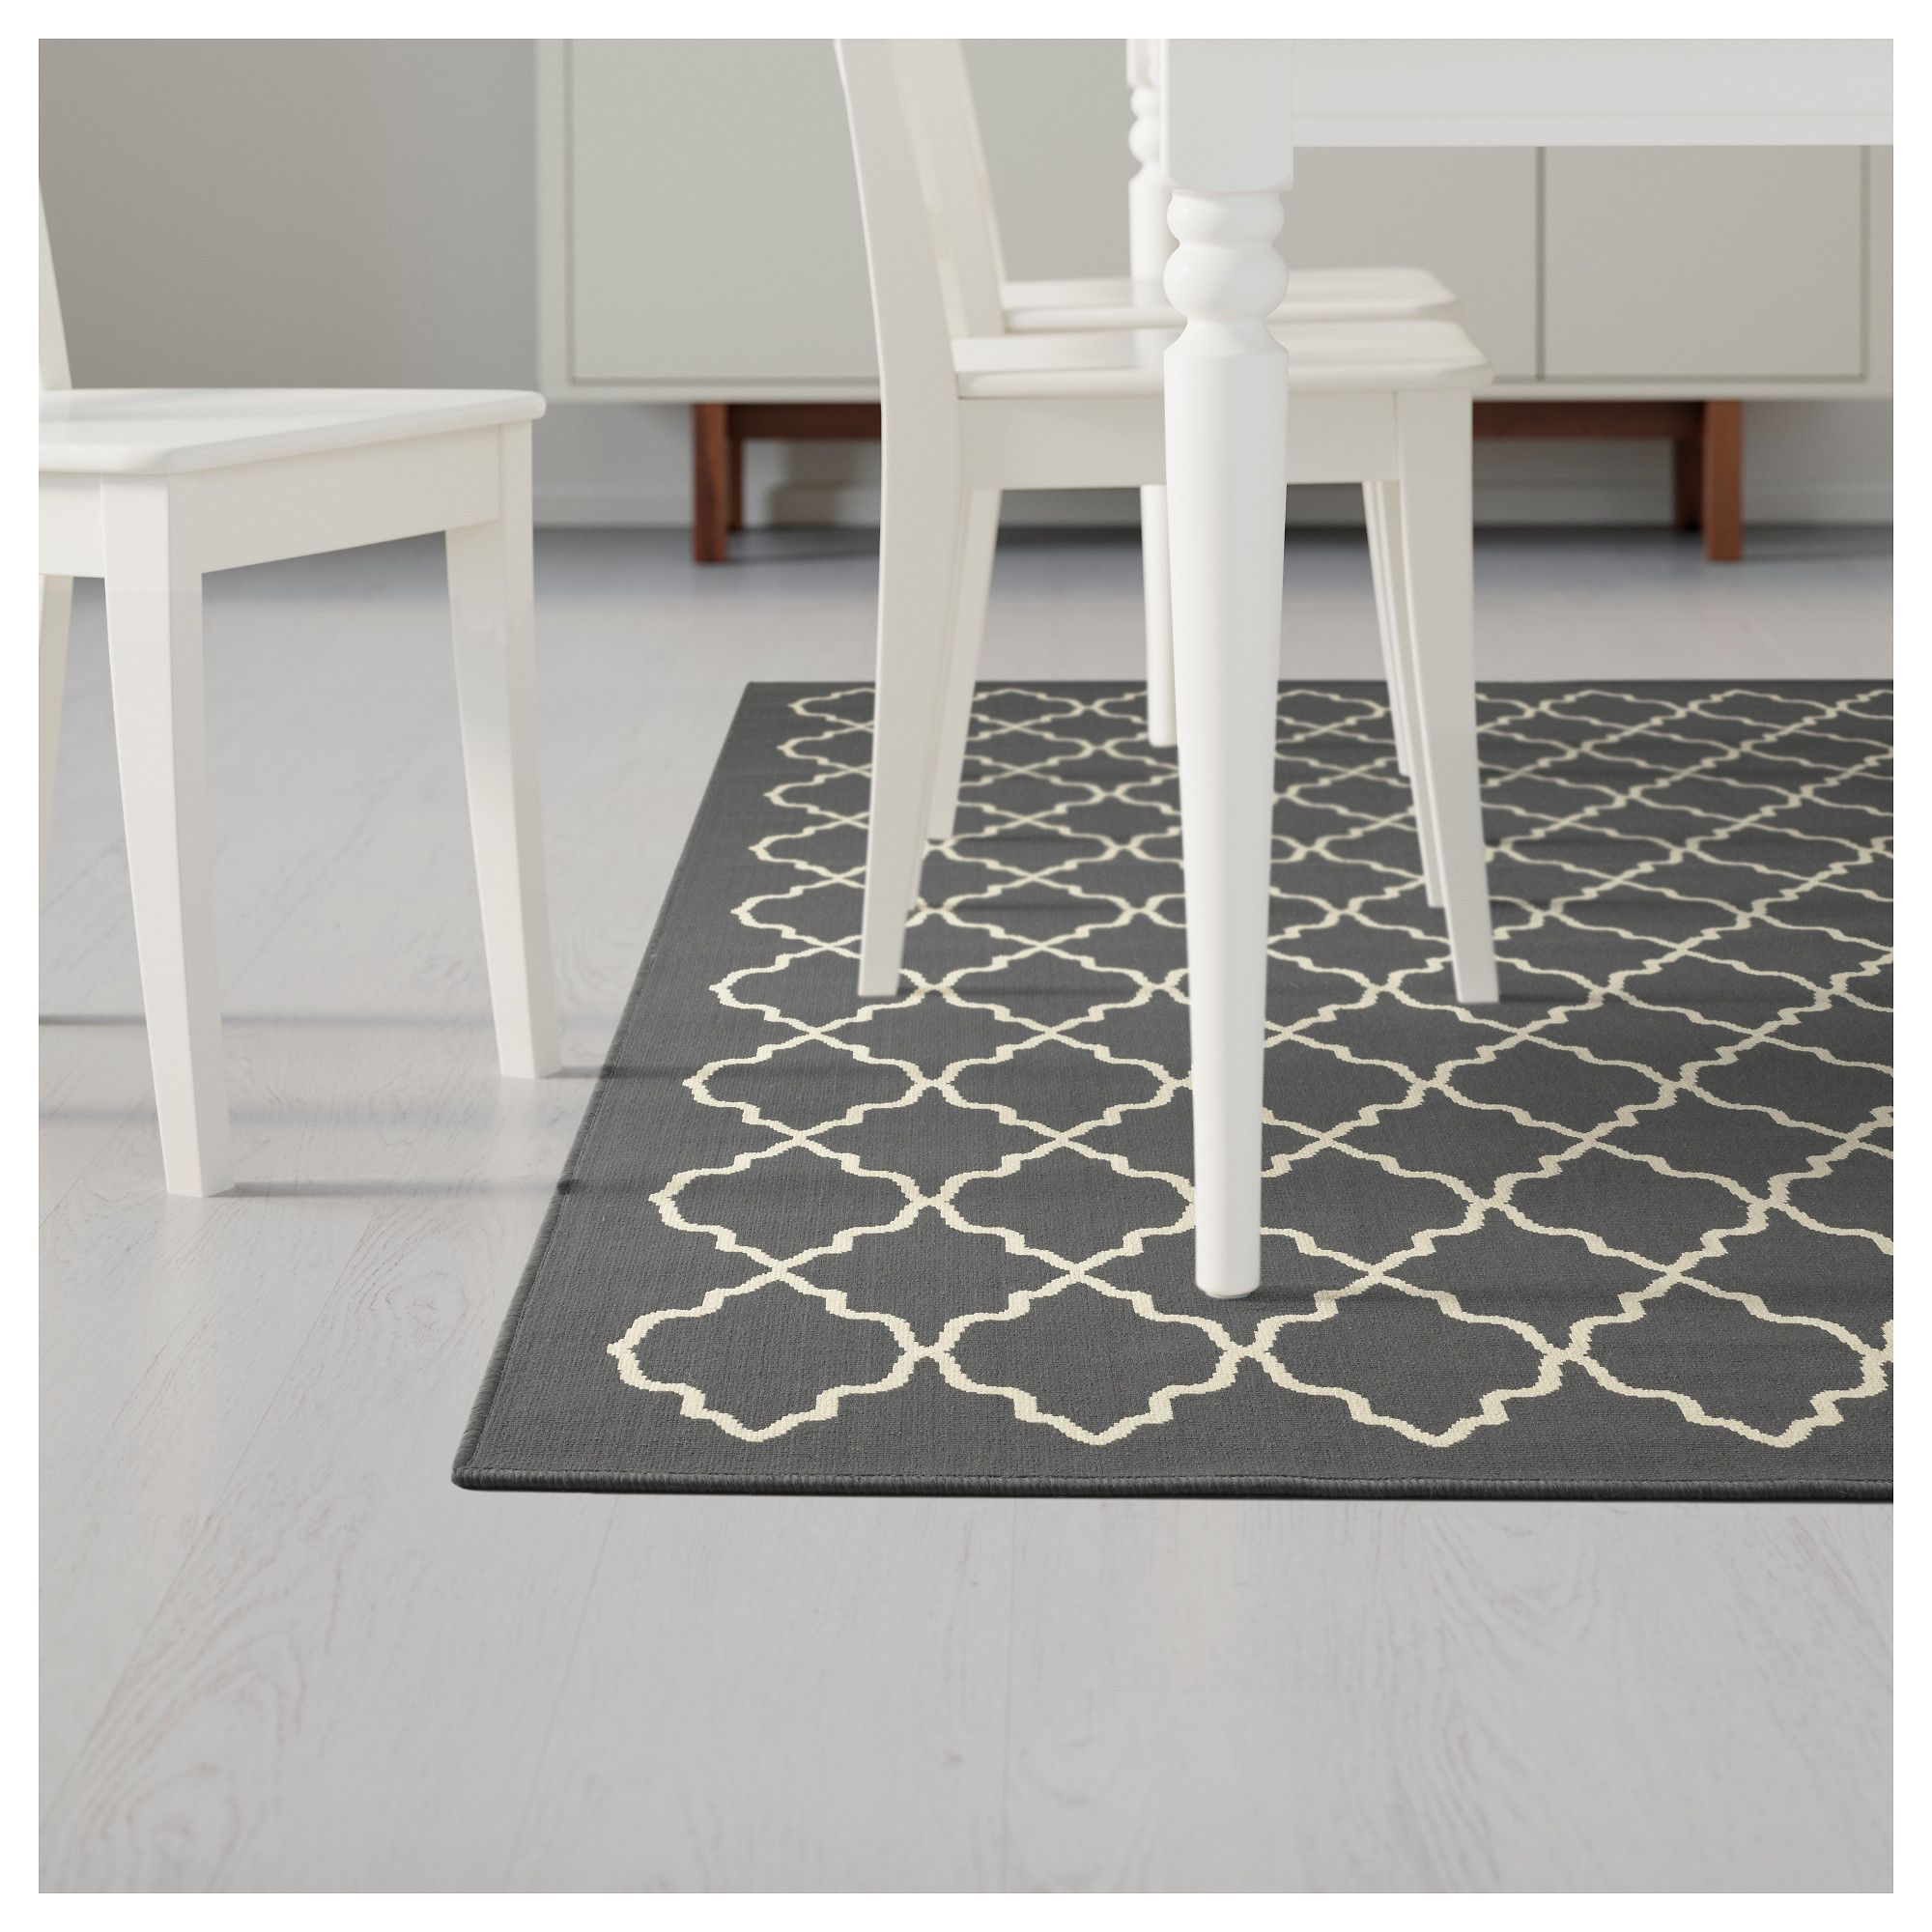 Want To Rugs Simple Guideline